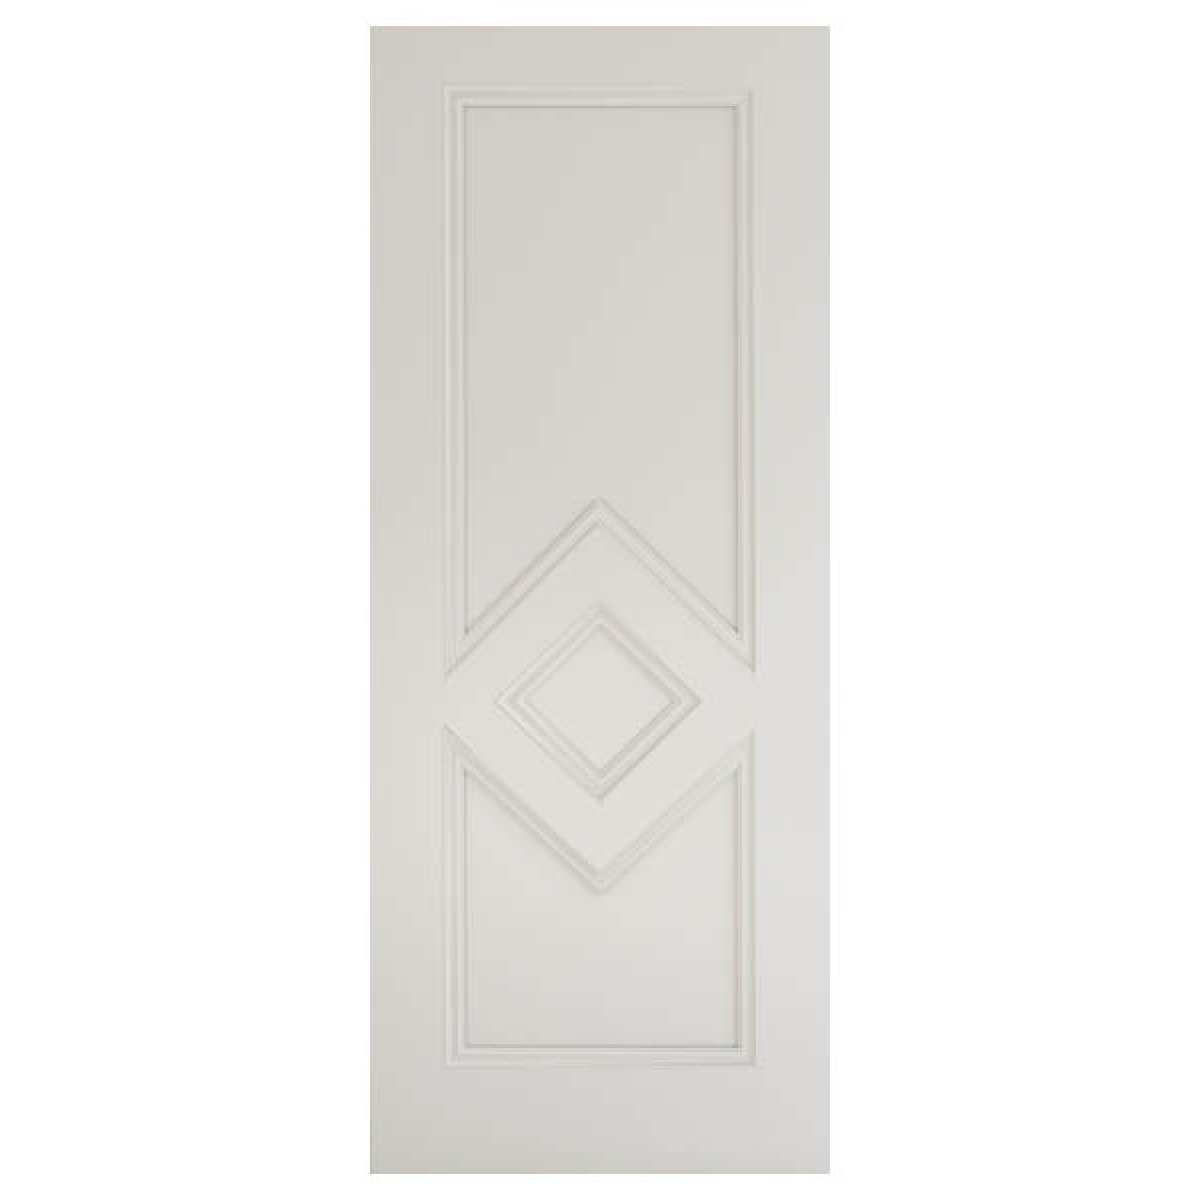 ascot white primed flat websters Image by Websters Timber